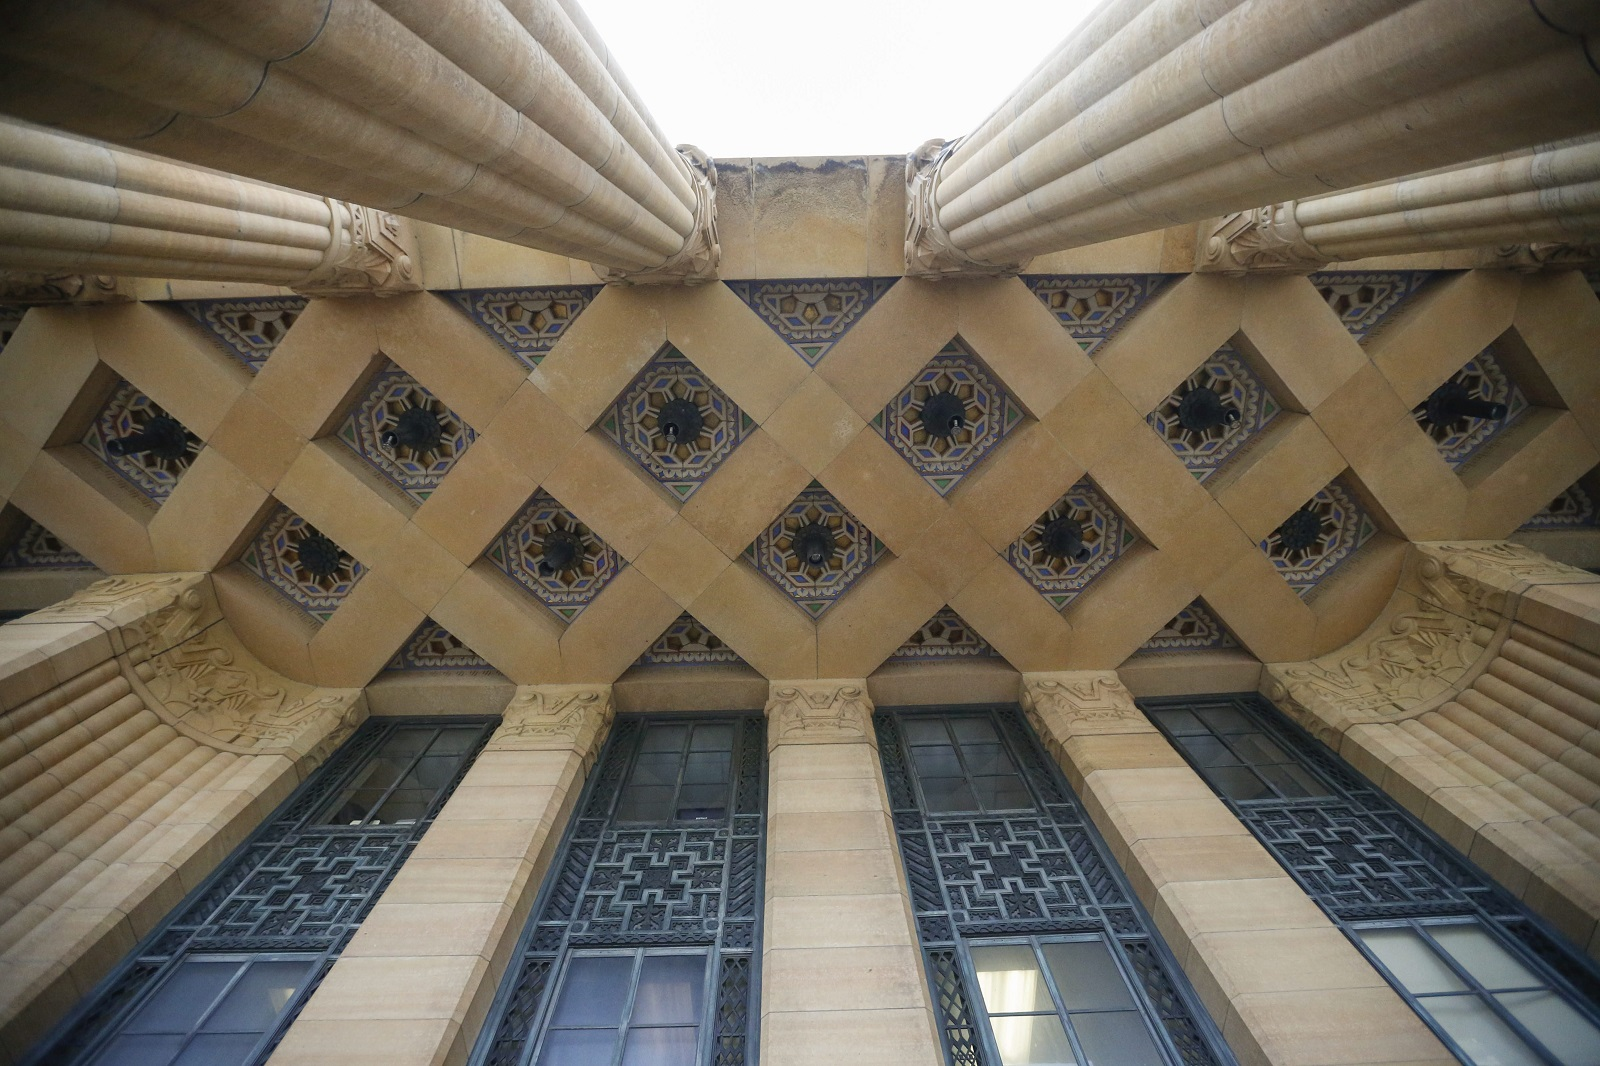 These buildings are gershwin stylish art deco enlivens buffalo the ceiling over the three story stone atrium contained in the pillars on the principle entrance to buffalo metropolis corridor options intricate dailygadgetfo Images